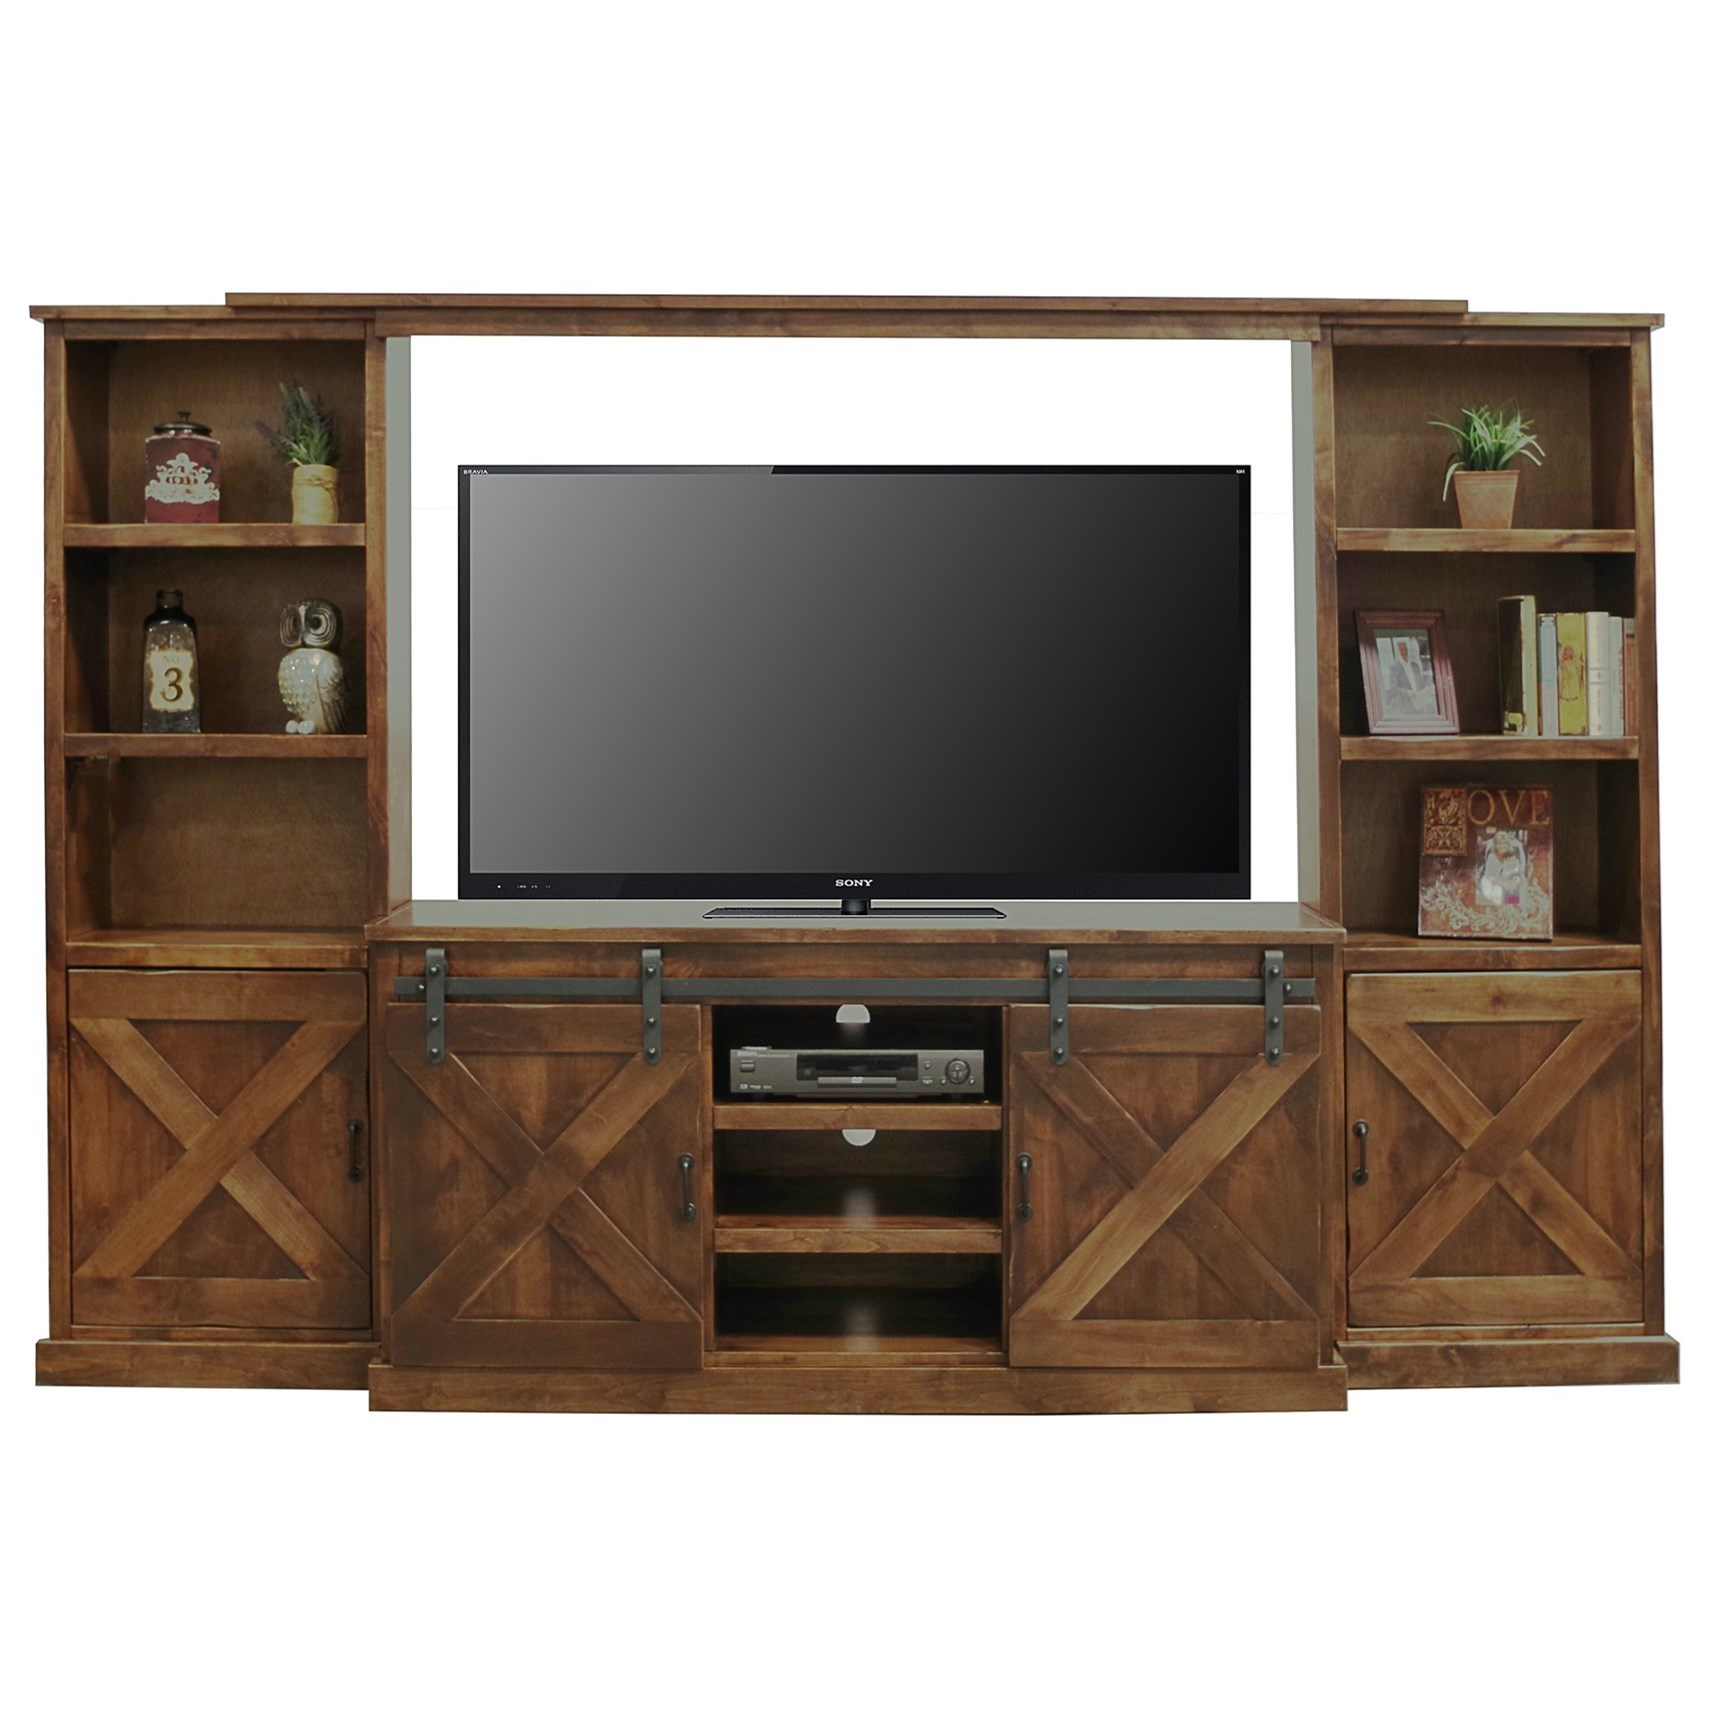 Legends Furniture Farmhouse Collection Rustic Entertainment Wall